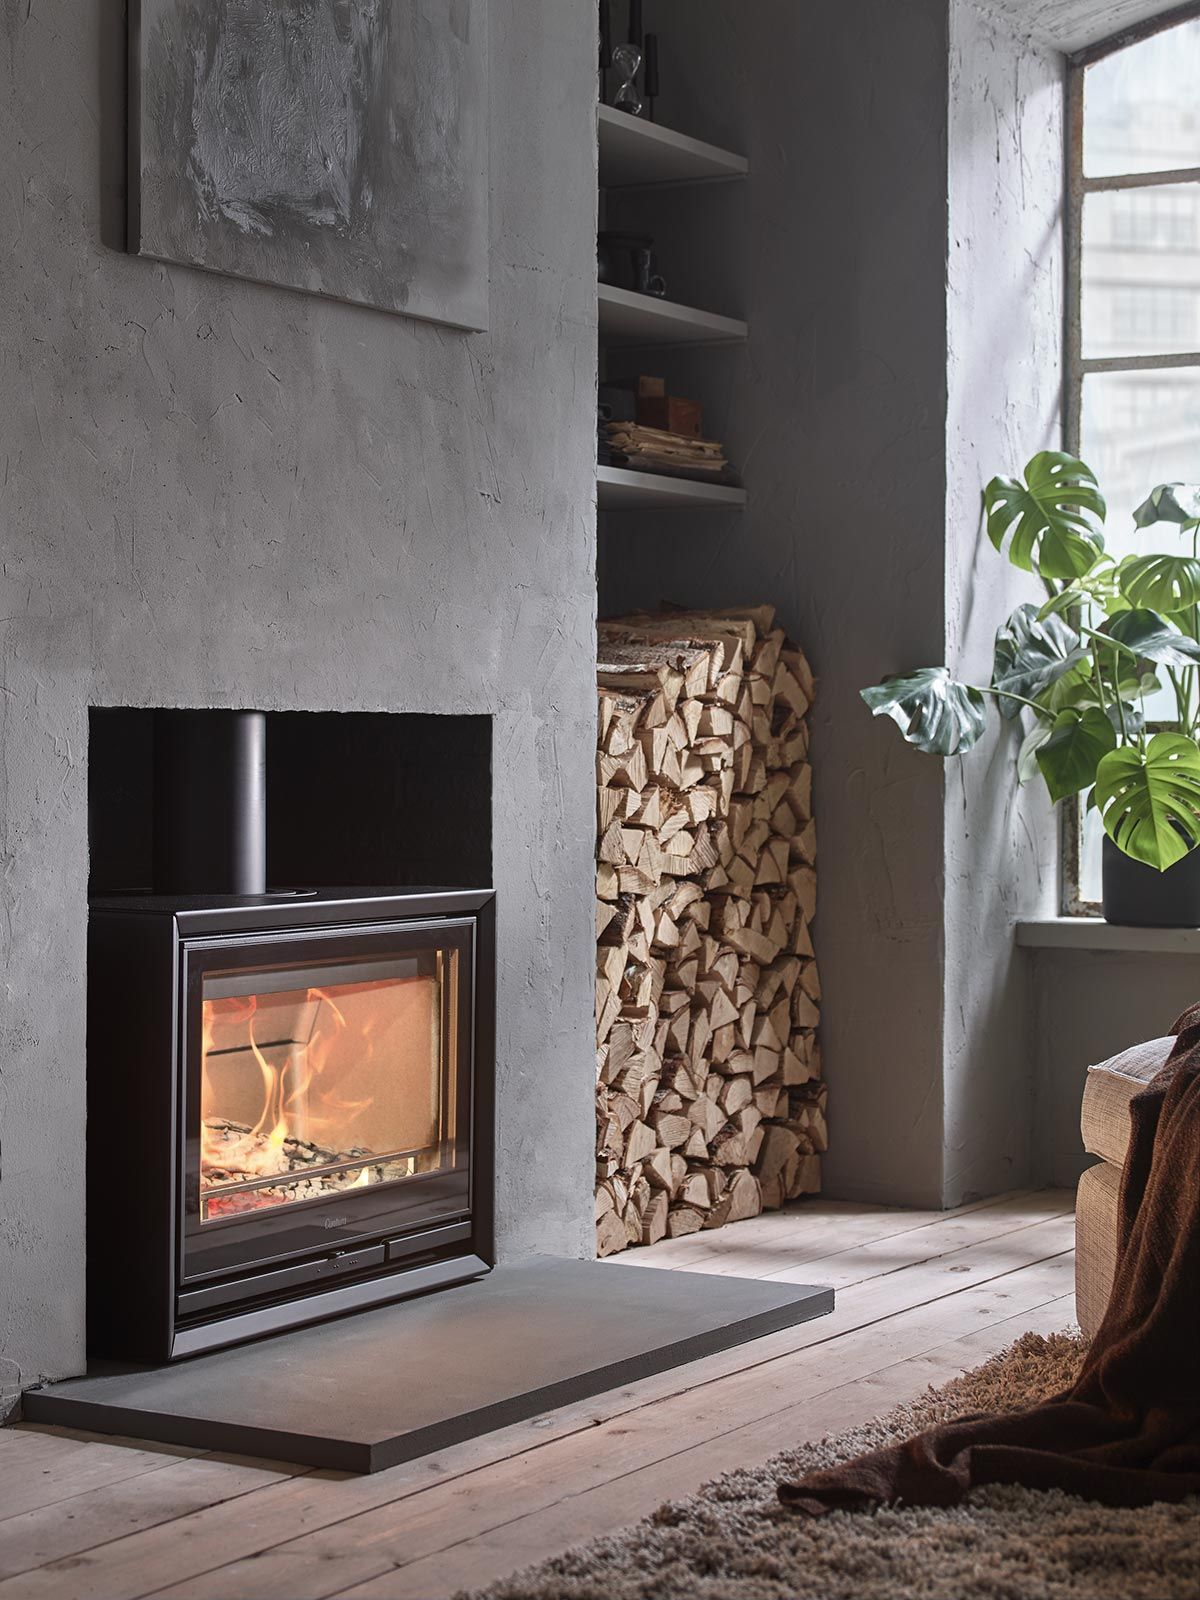 Floor Level Fireplace Contura 330 The Stove In The Illustration Has A Fire Rated Construct Freestanding Fireplace Log Burner Living Room Wood Burner Fireplace